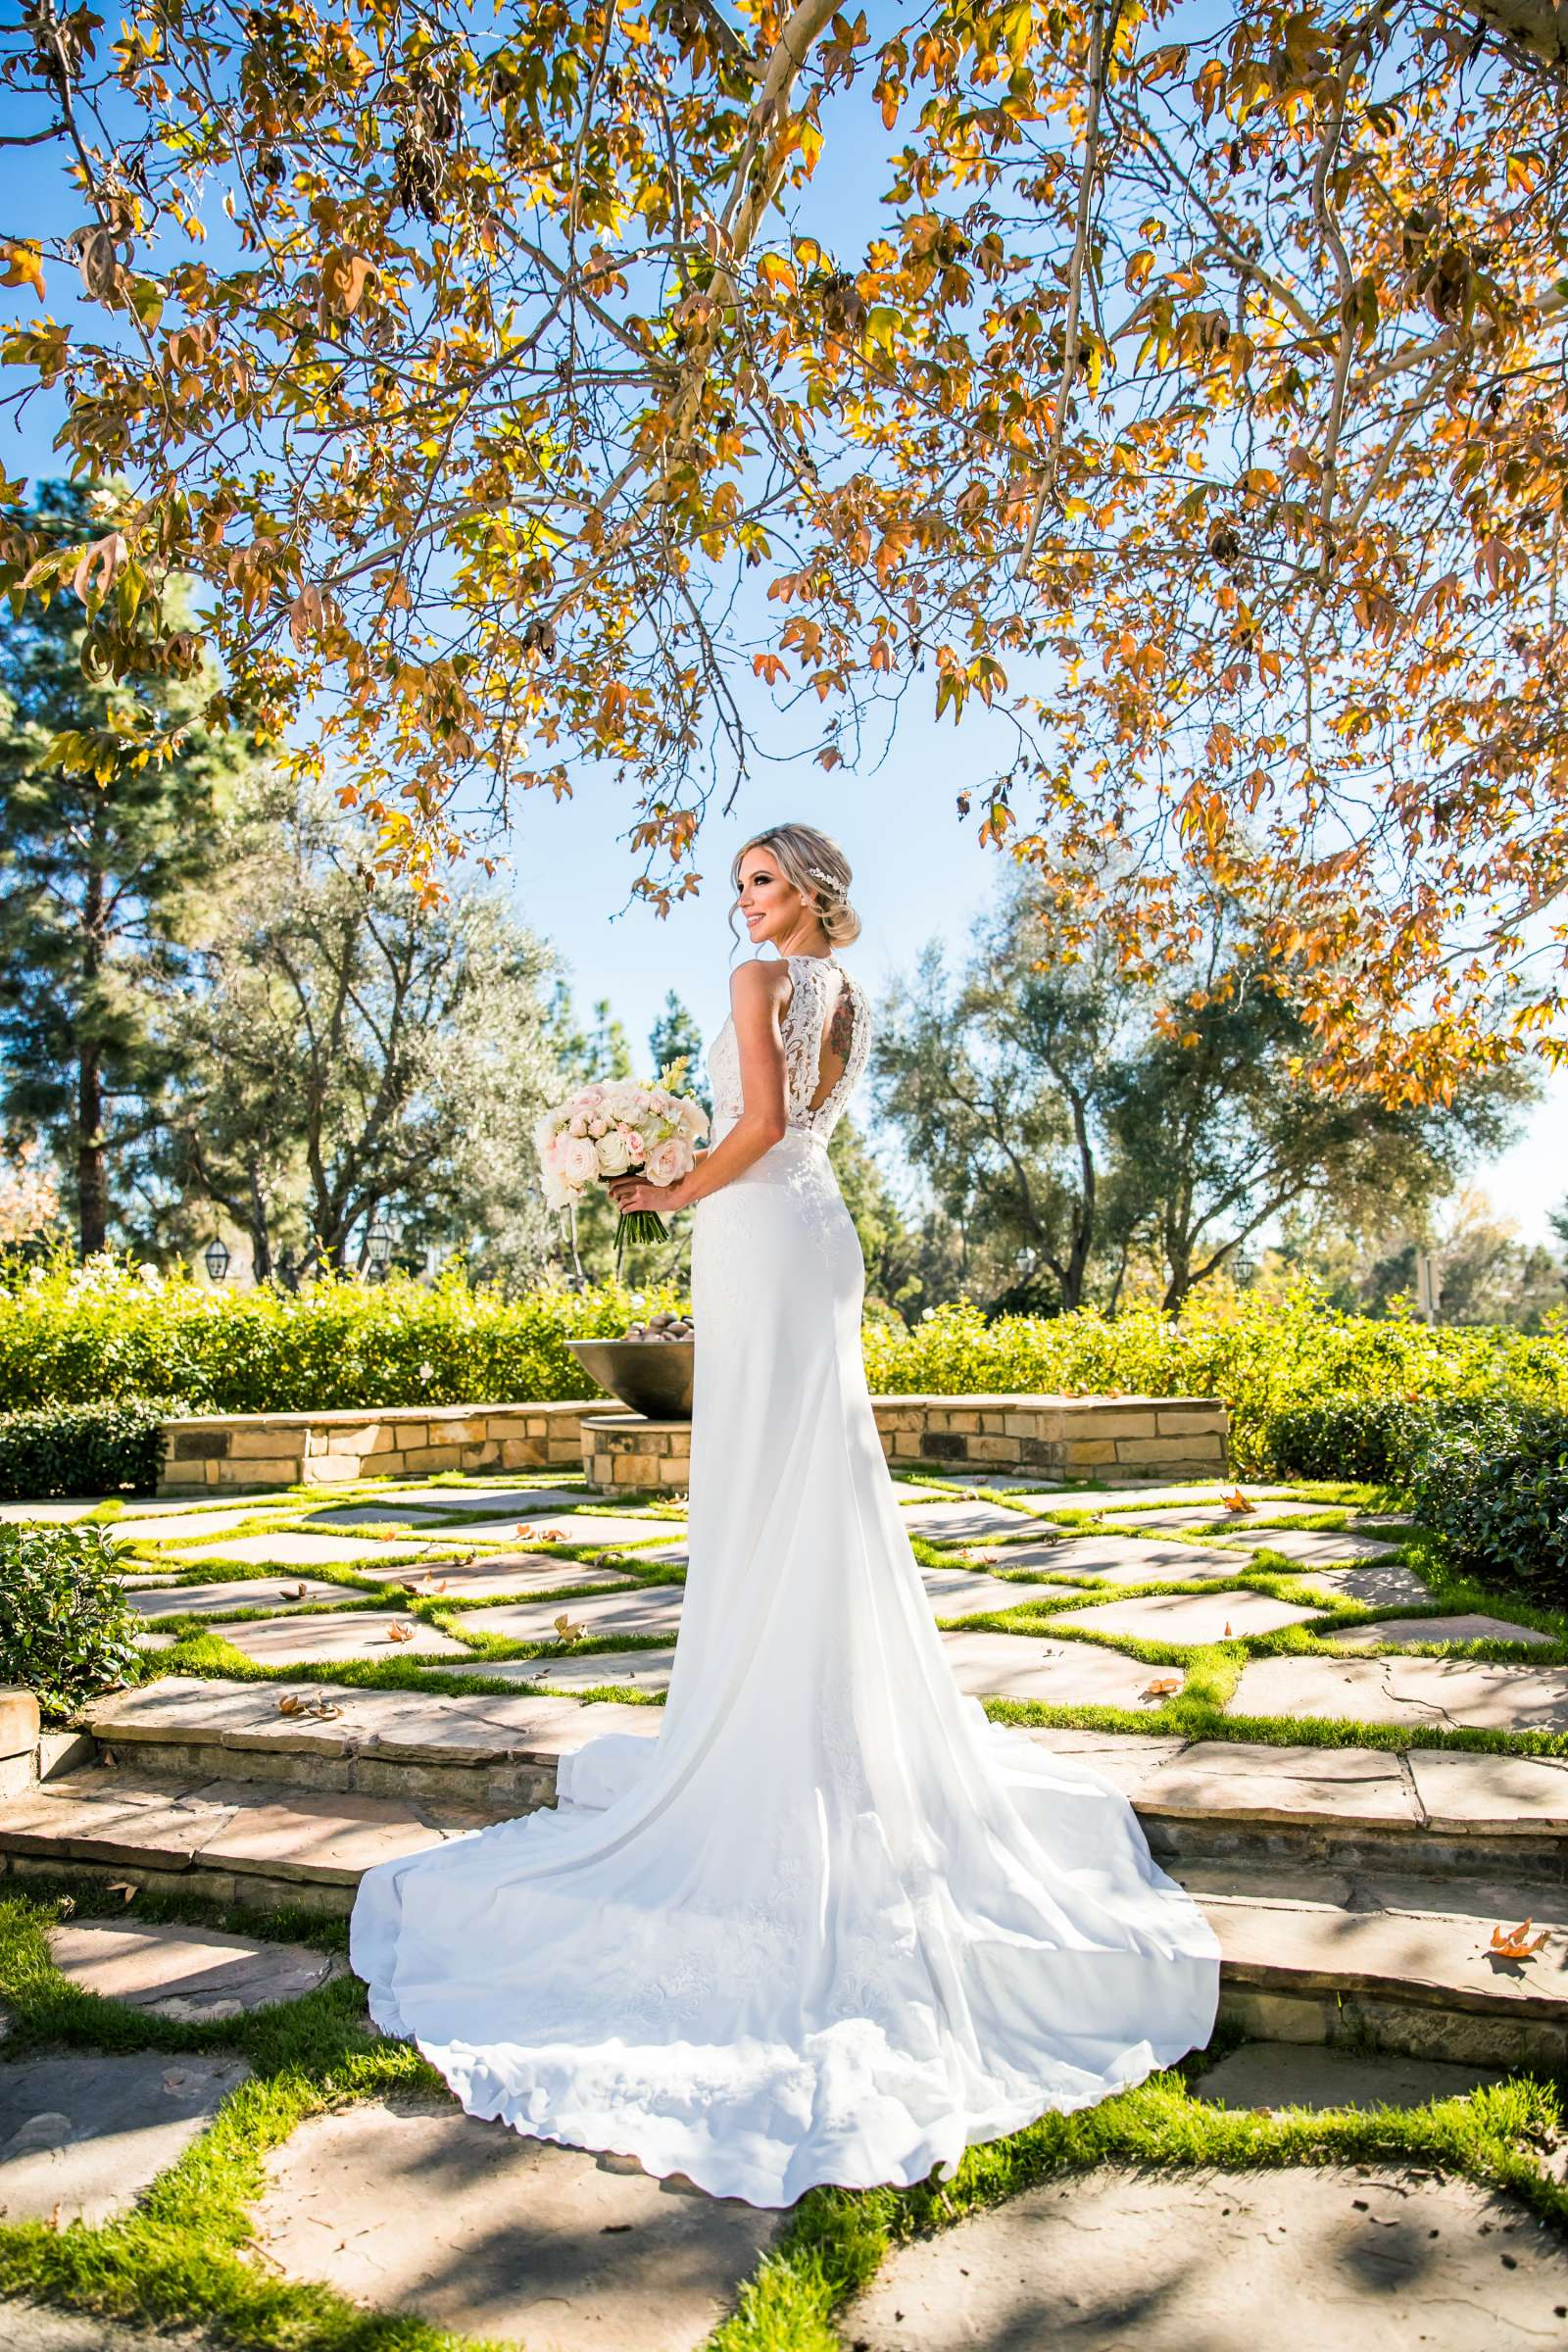 Cordiano Winery Wedding coordinated by Sisti & Co, Sara and Kyle Wedding Photo #35 by True Photography